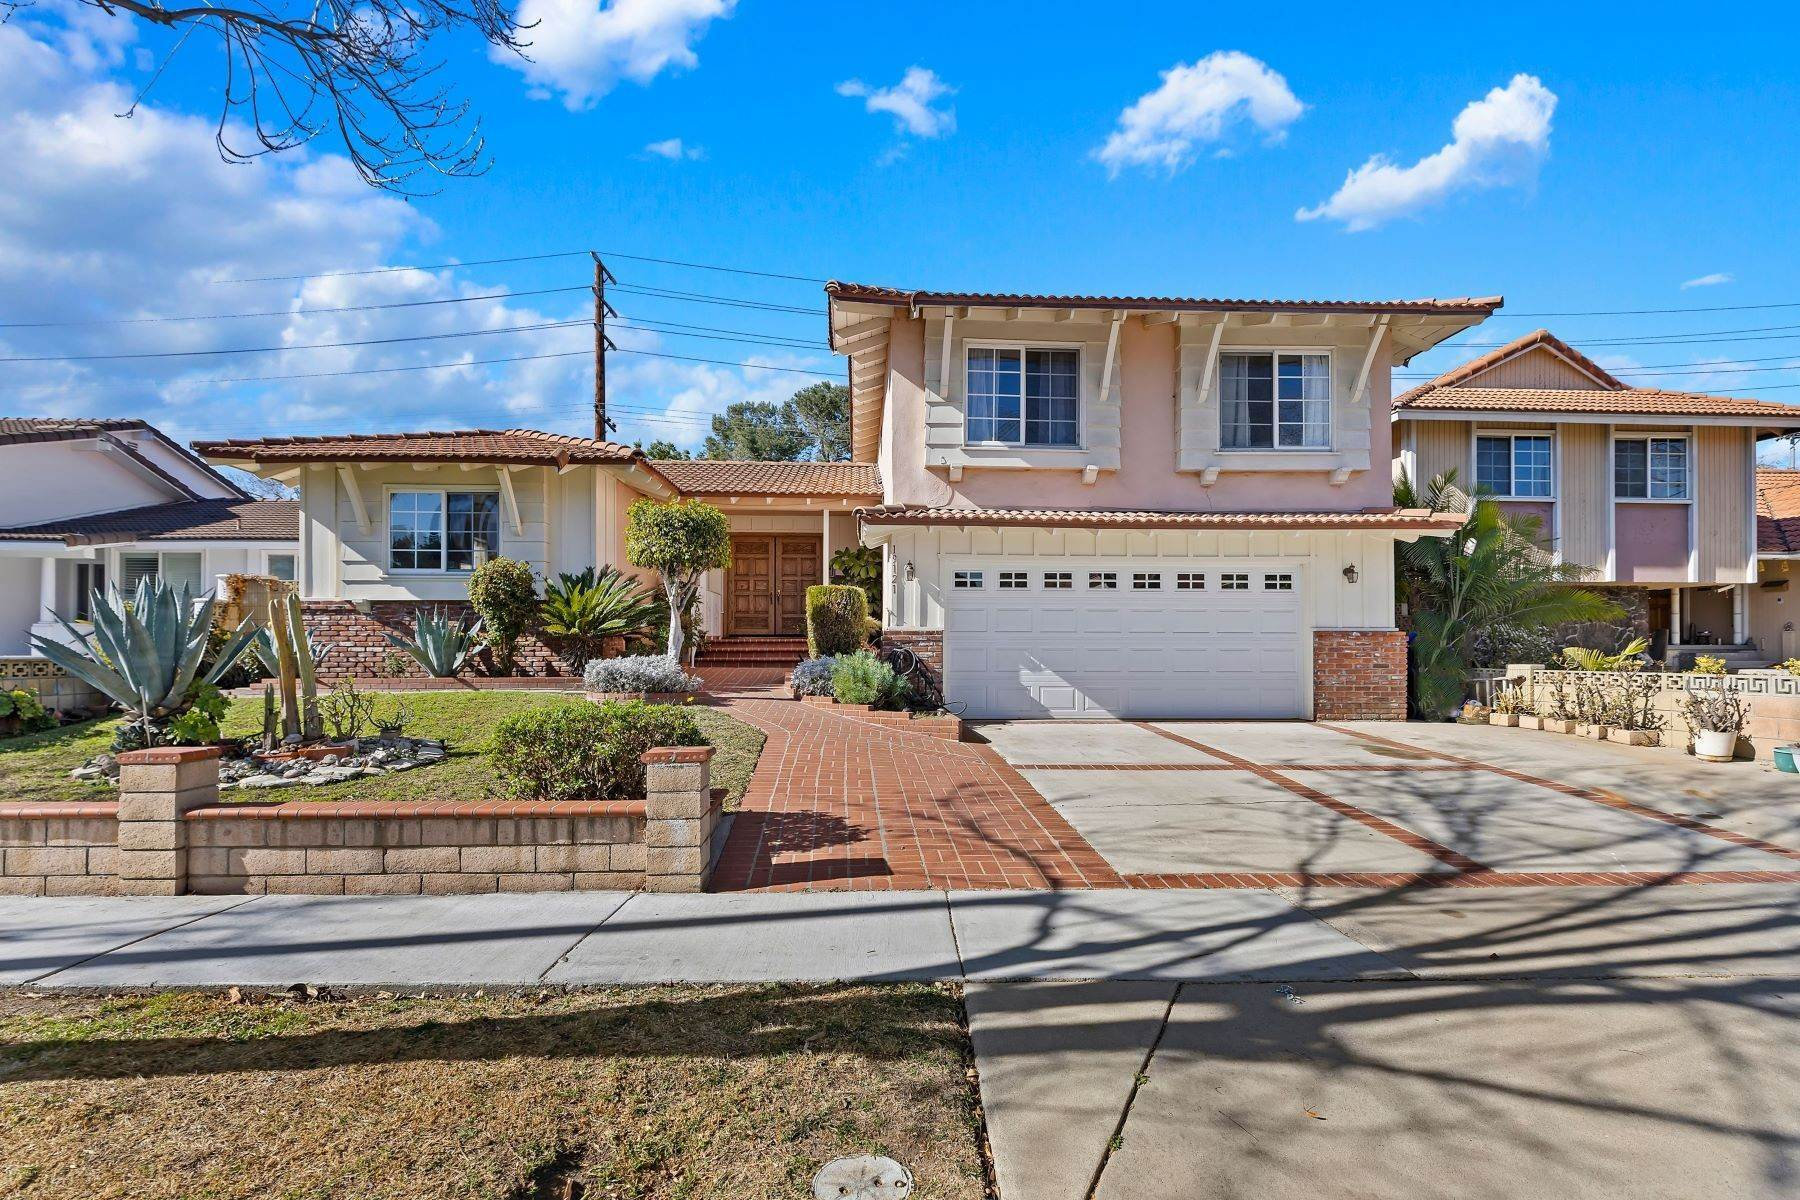 Single Family Homes for Sale at 19121 Allingham Ave, Cerritos, CA 90703 19121 Allingham Avenue Cerritos, California 90703 United States